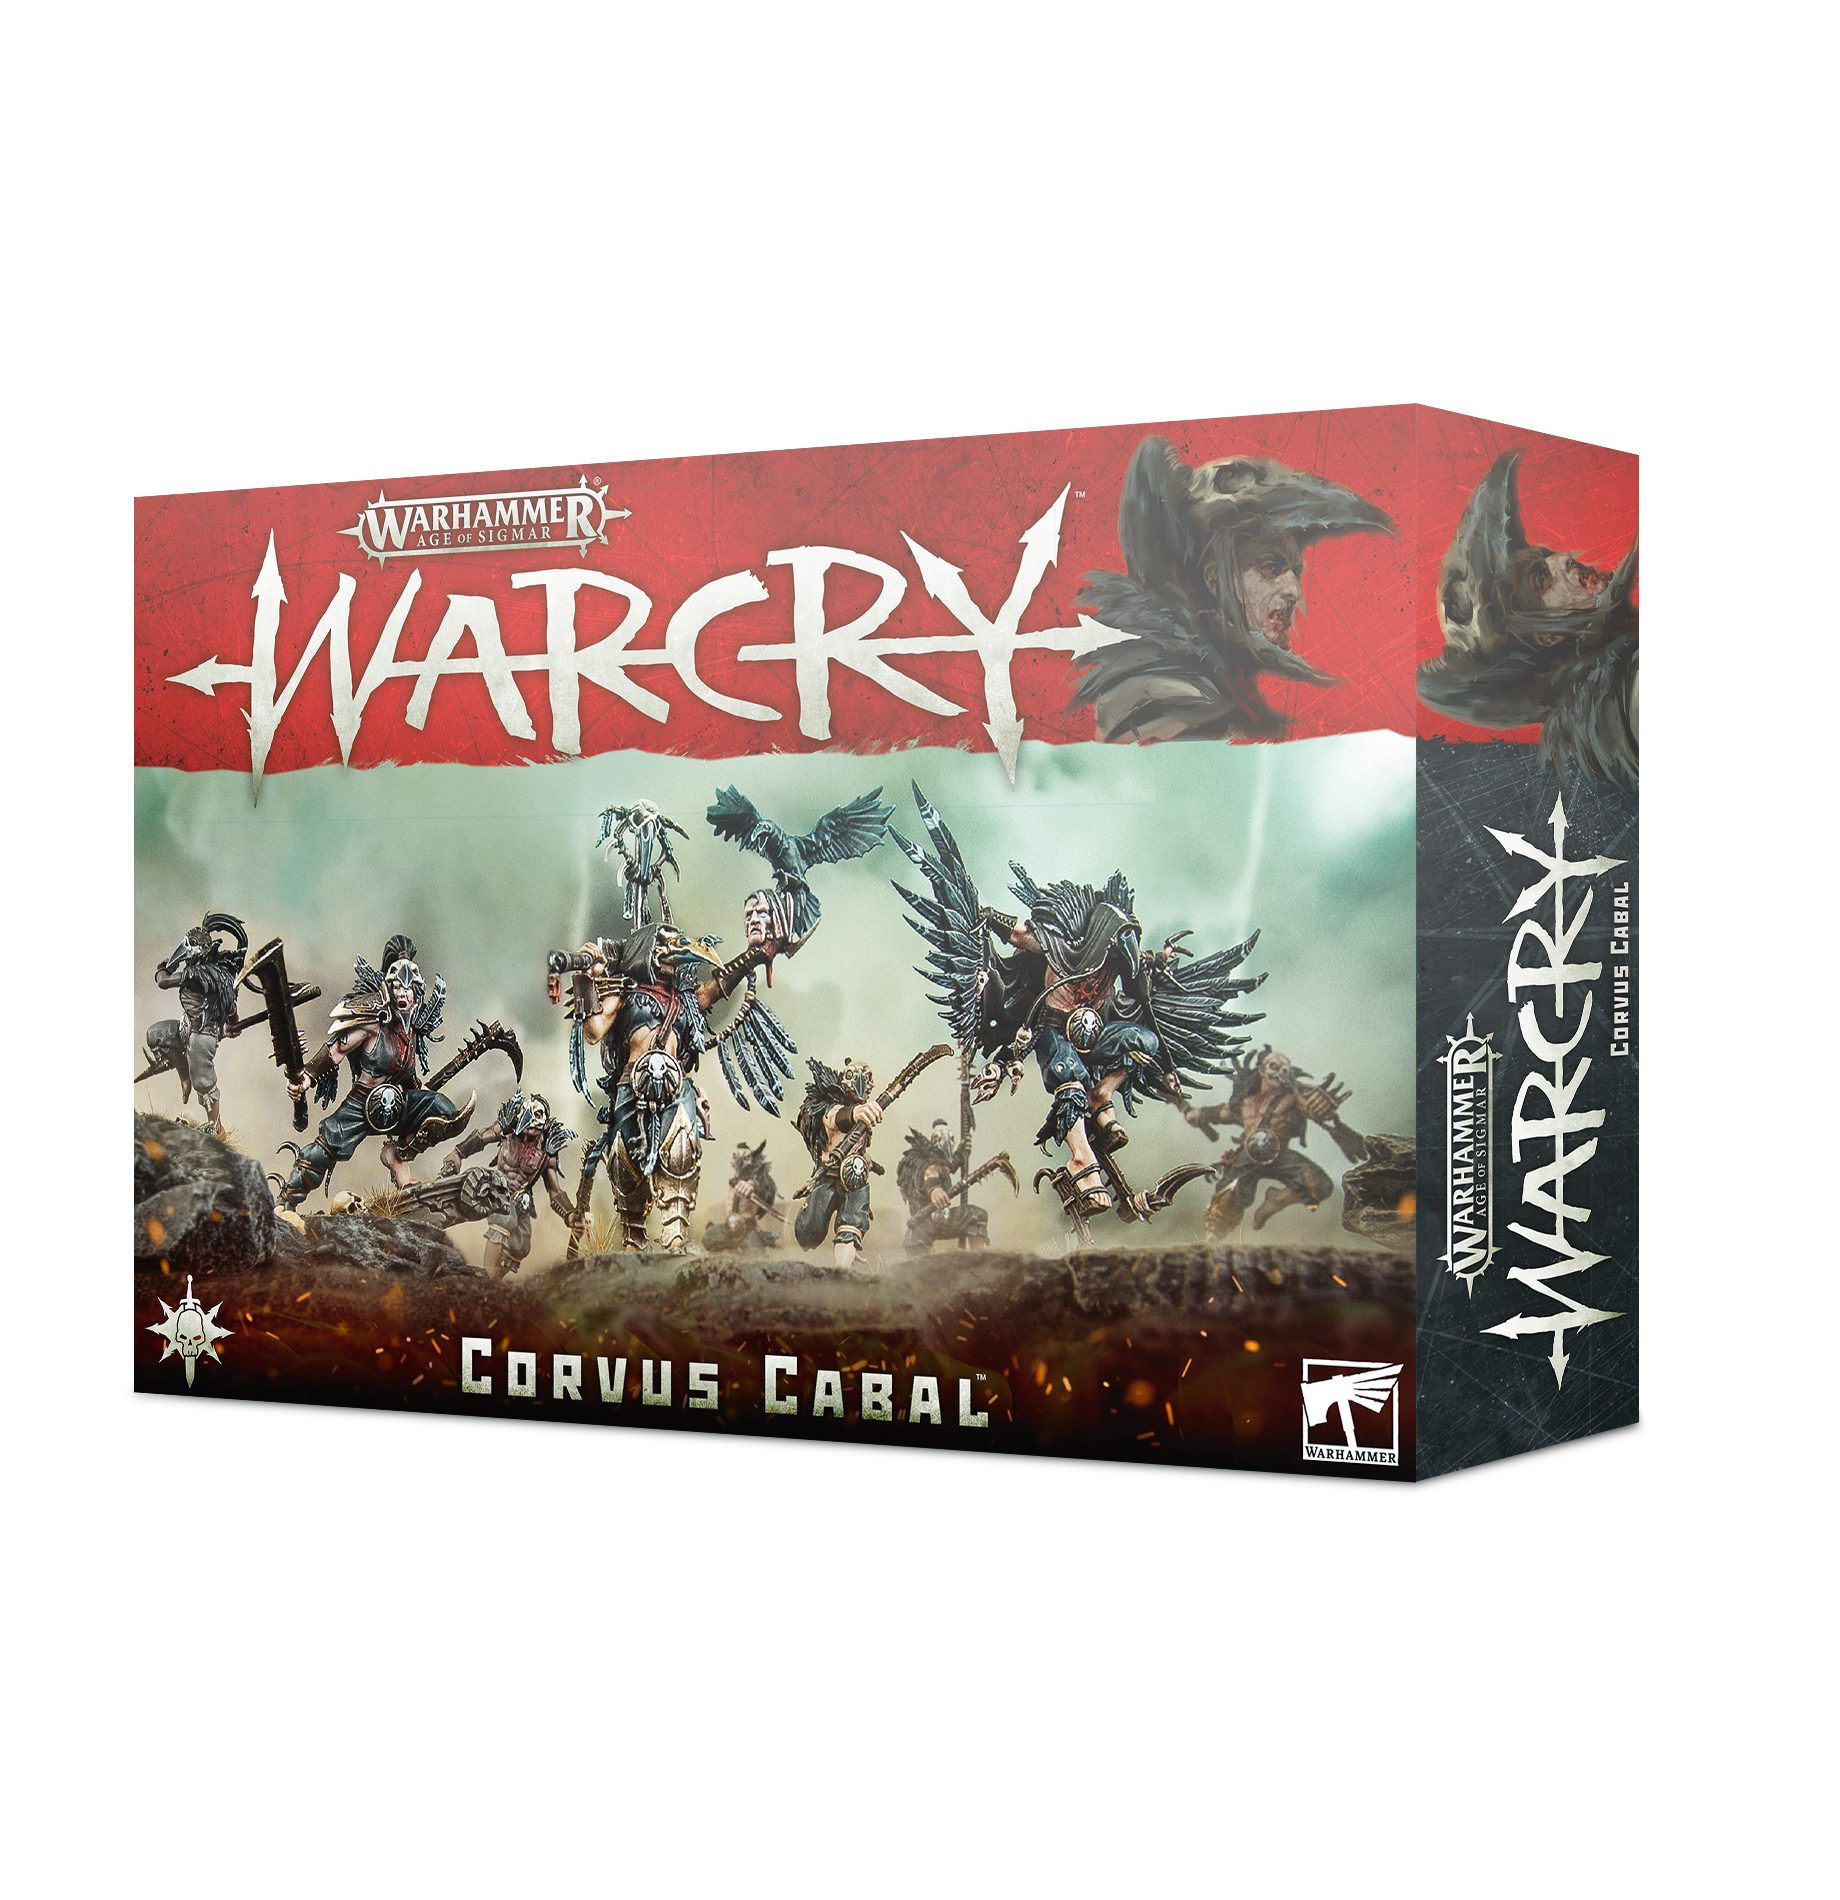 AOS Warcry: Corvus Cabal-Warband